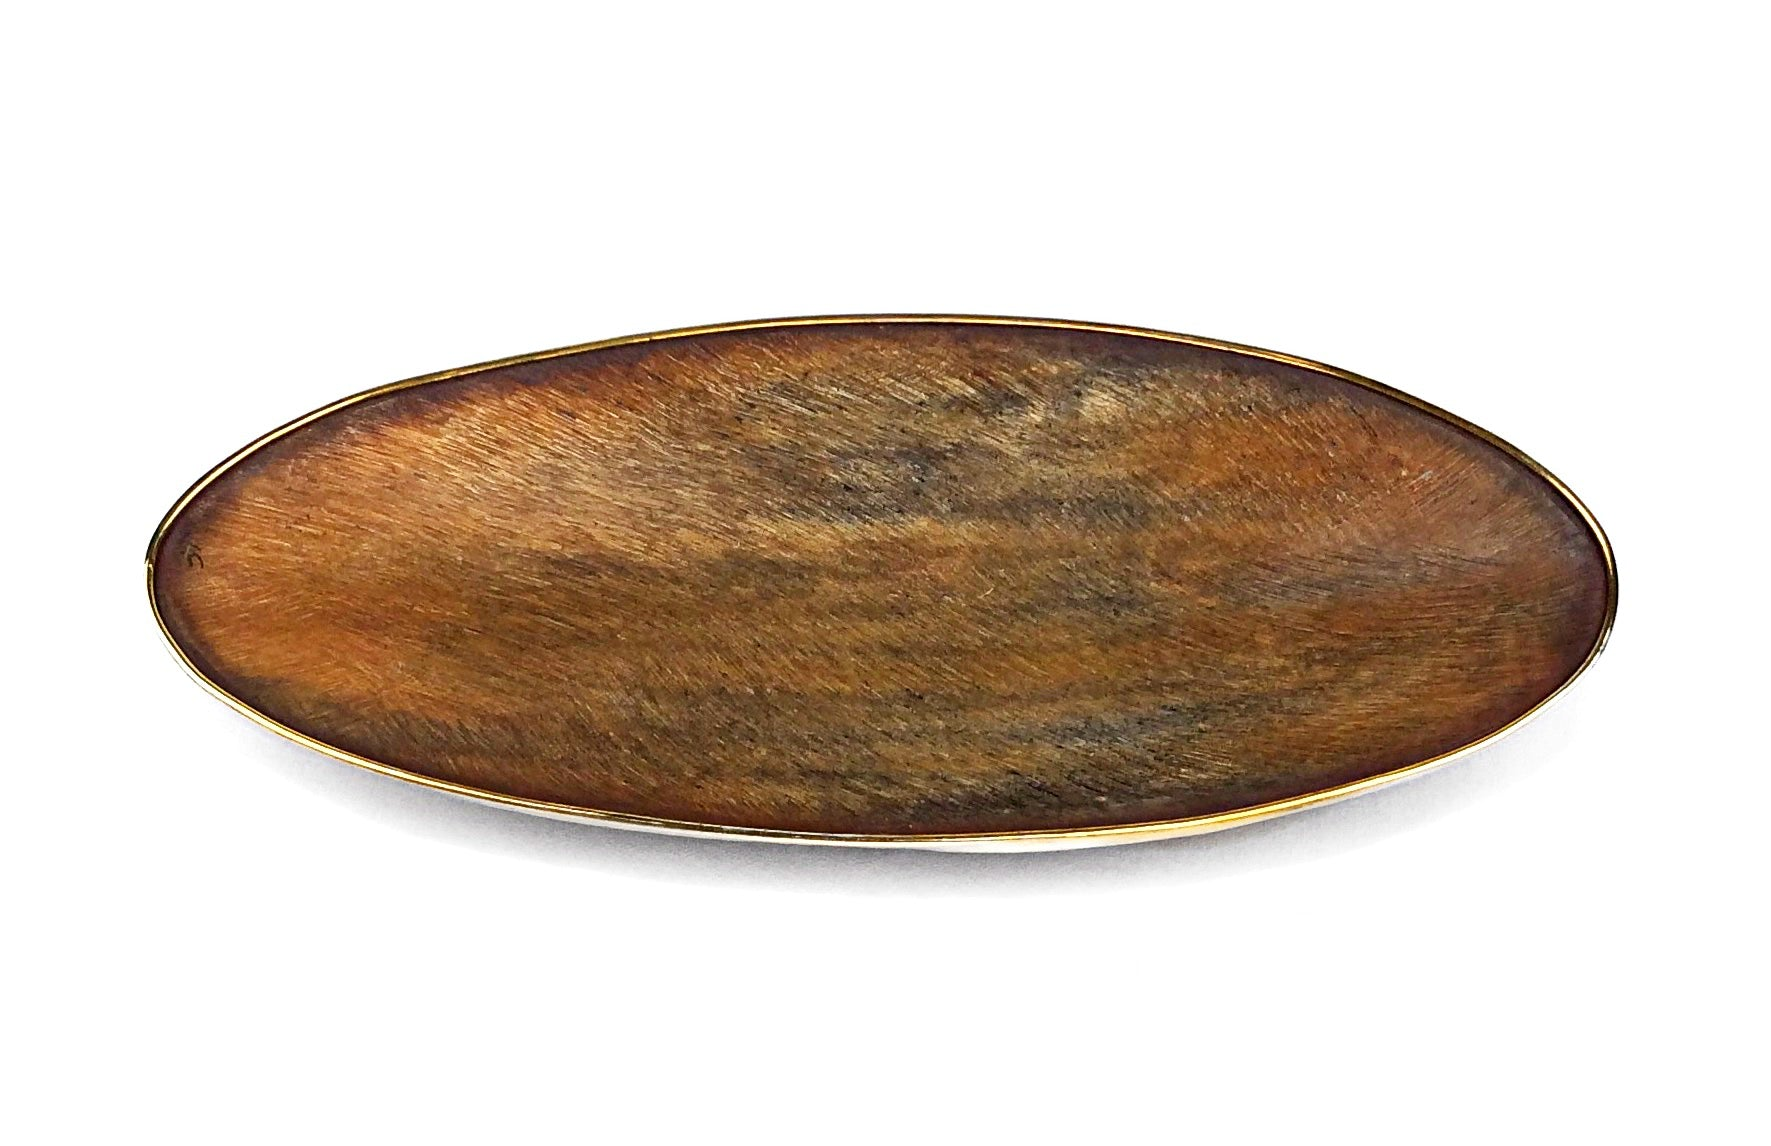 Gold-Trimmed Horn Bowl